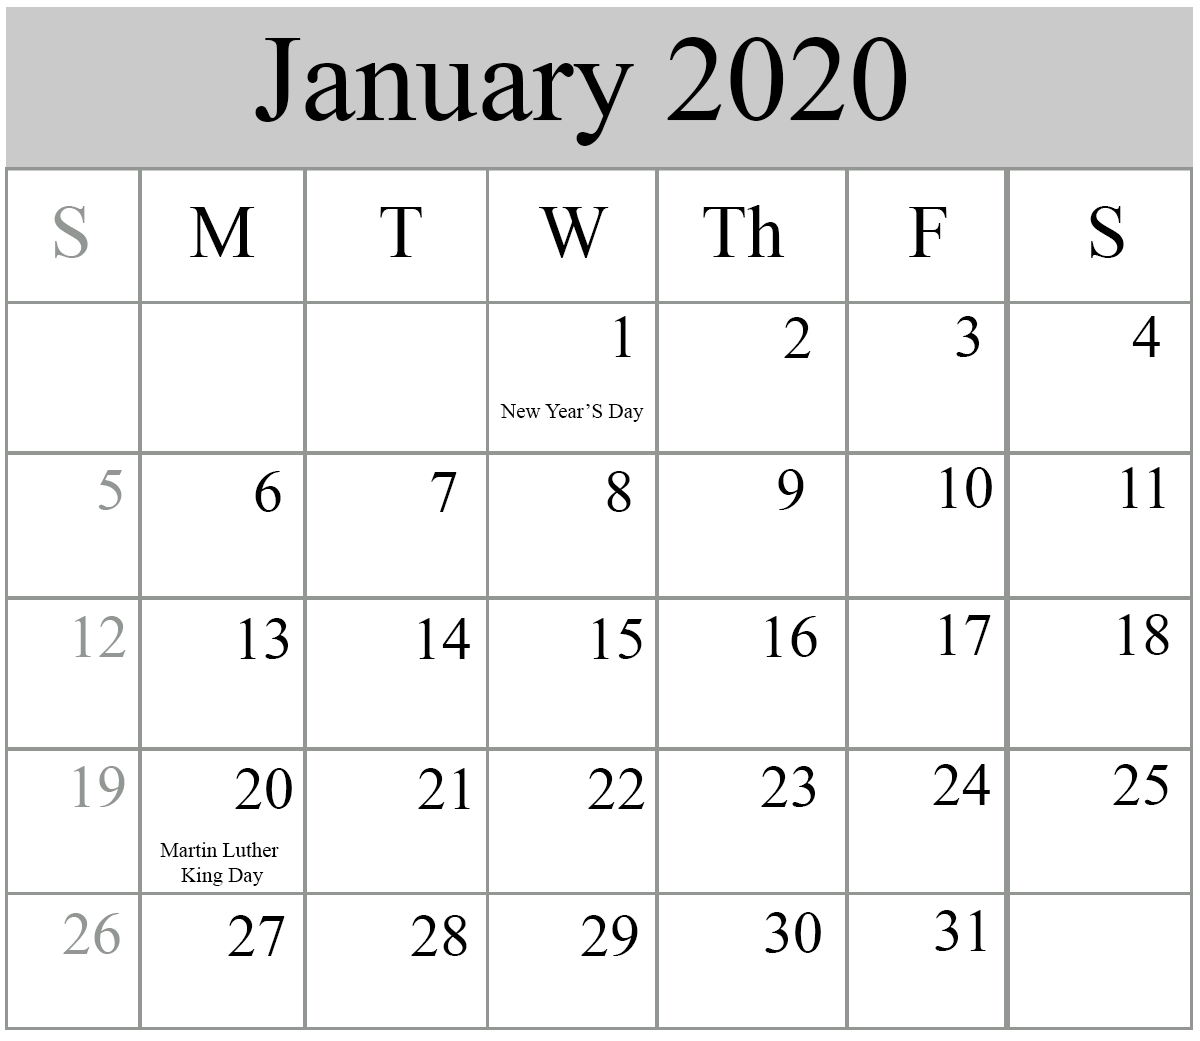 Free Blank January 2020 Calendar Printable In Pdf, Word-January 2020 Calendar In Excel